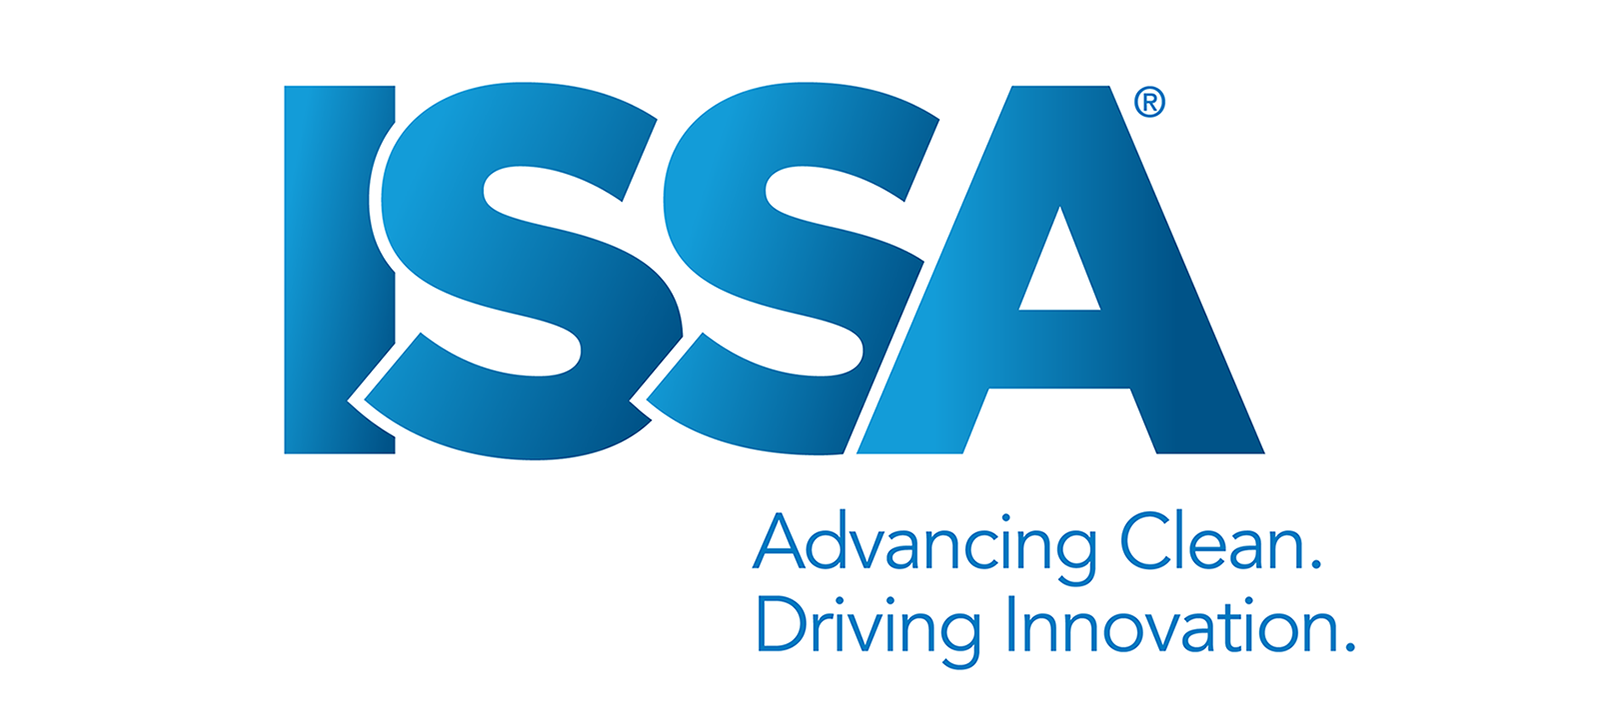 Brandywine is a proud associate member of the International Sanitary Supply Association, Inc. (ISSA).